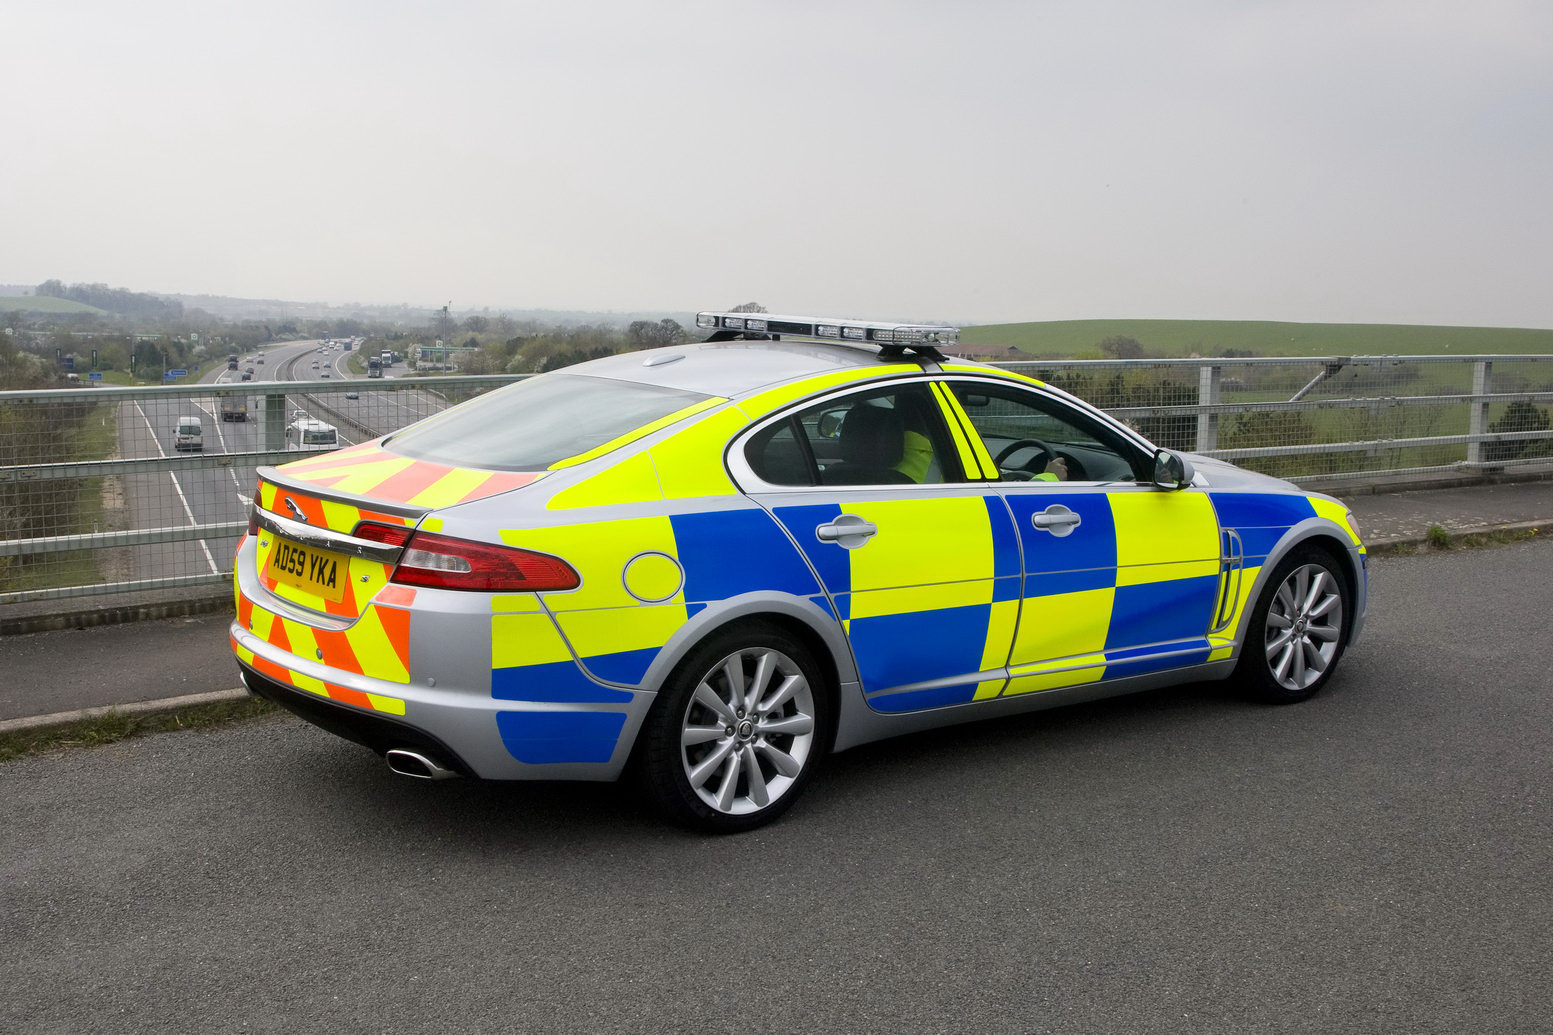 first jaguar xf police cars go on duty in the uk. Black Bedroom Furniture Sets. Home Design Ideas